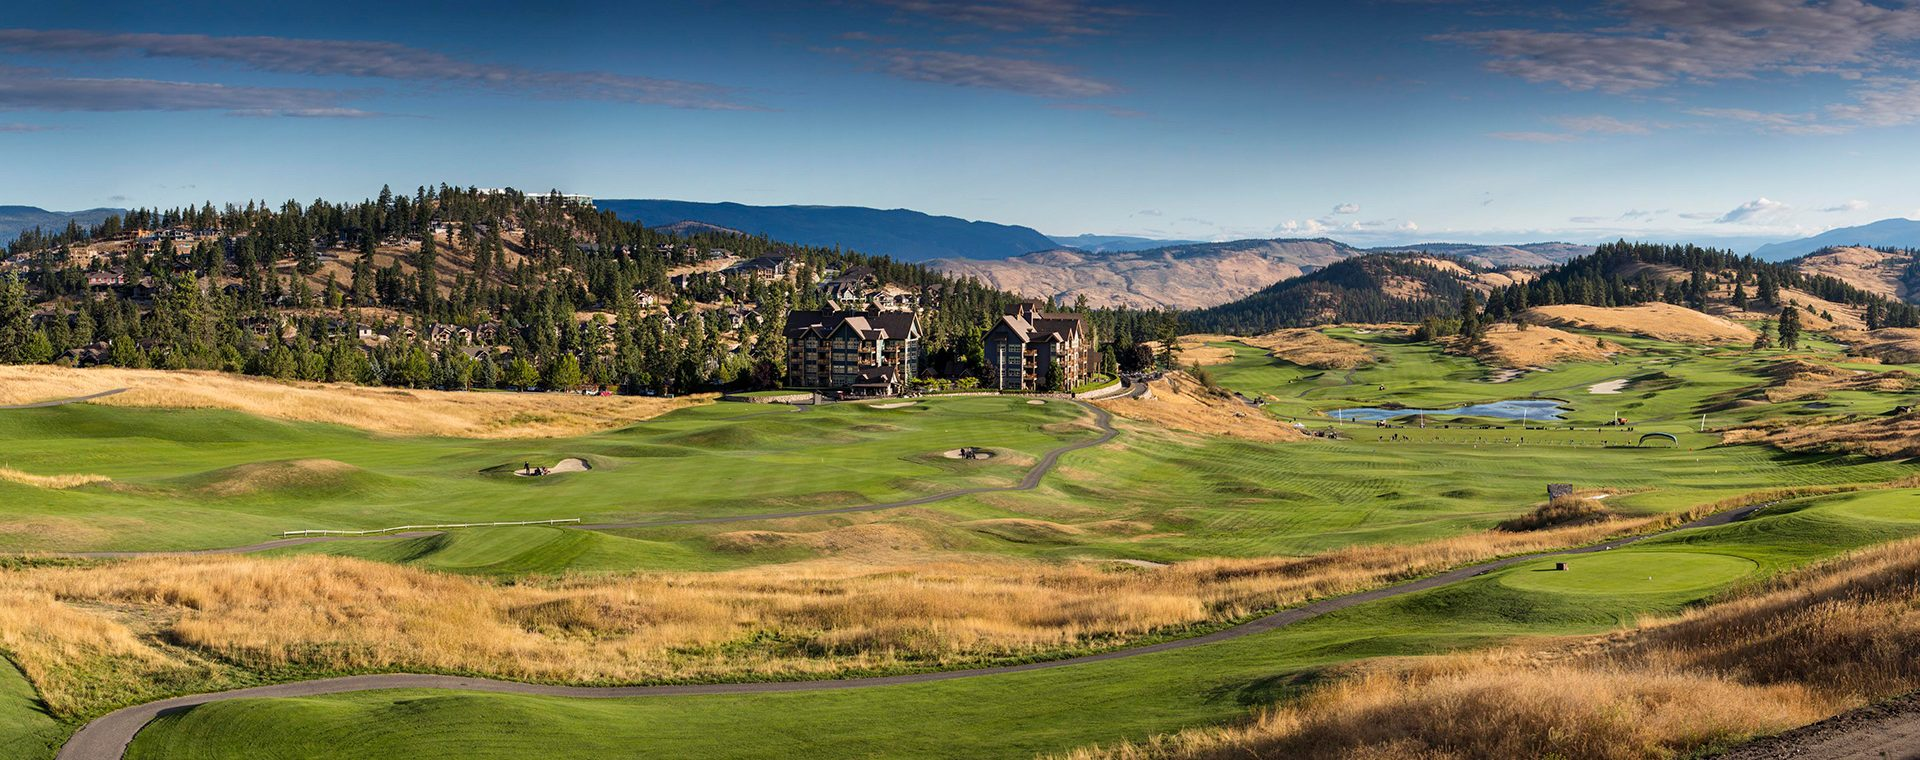 Predator Ridge: Resort Living in the Okanagan